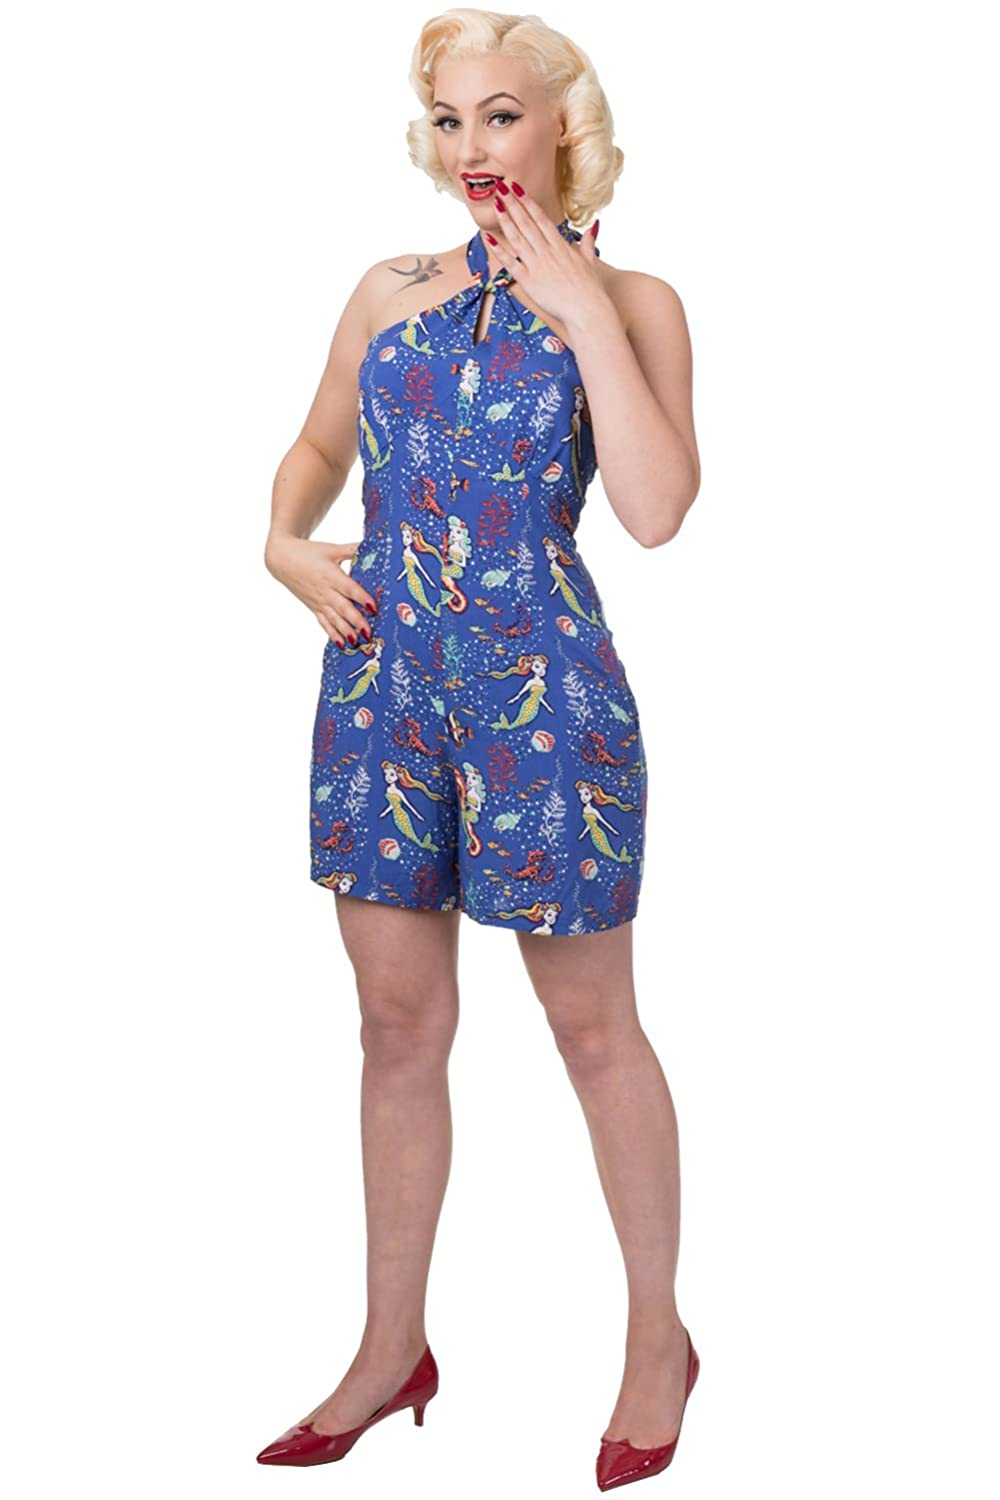 Vintage Rompers, Playsuits | Retro, Pin Up, Rockabilly Playsuits Banned Made Wonder 50s Style Retro Playsuit $32.95 AT vintagedancer.com